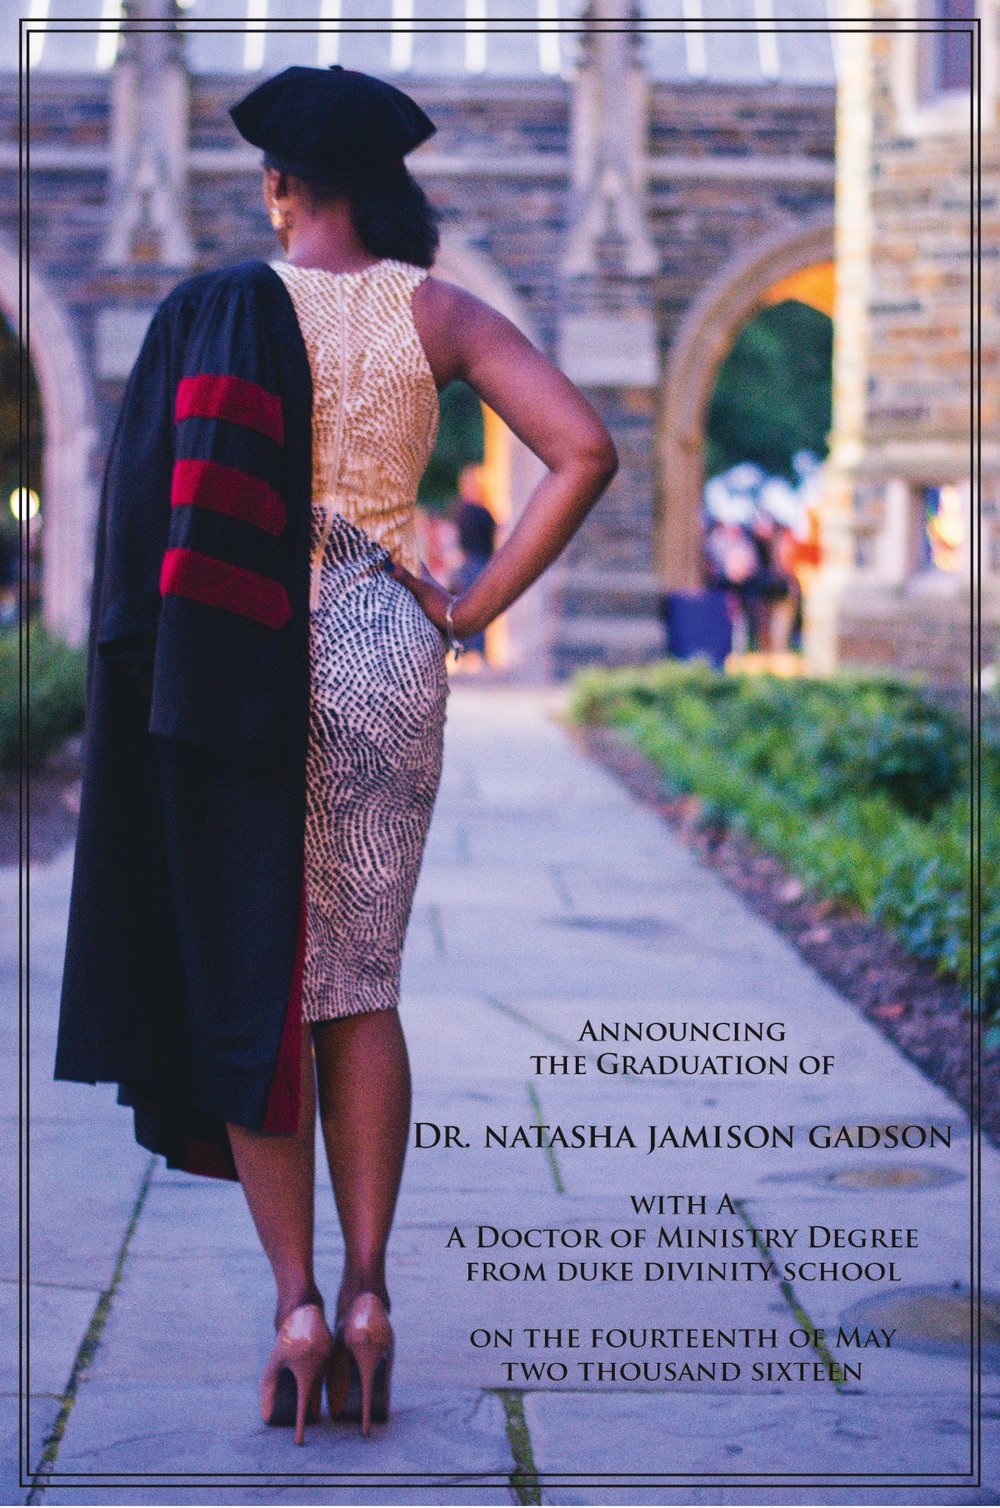 proudly introducing...Dr. Natasha Jamison Gadson -